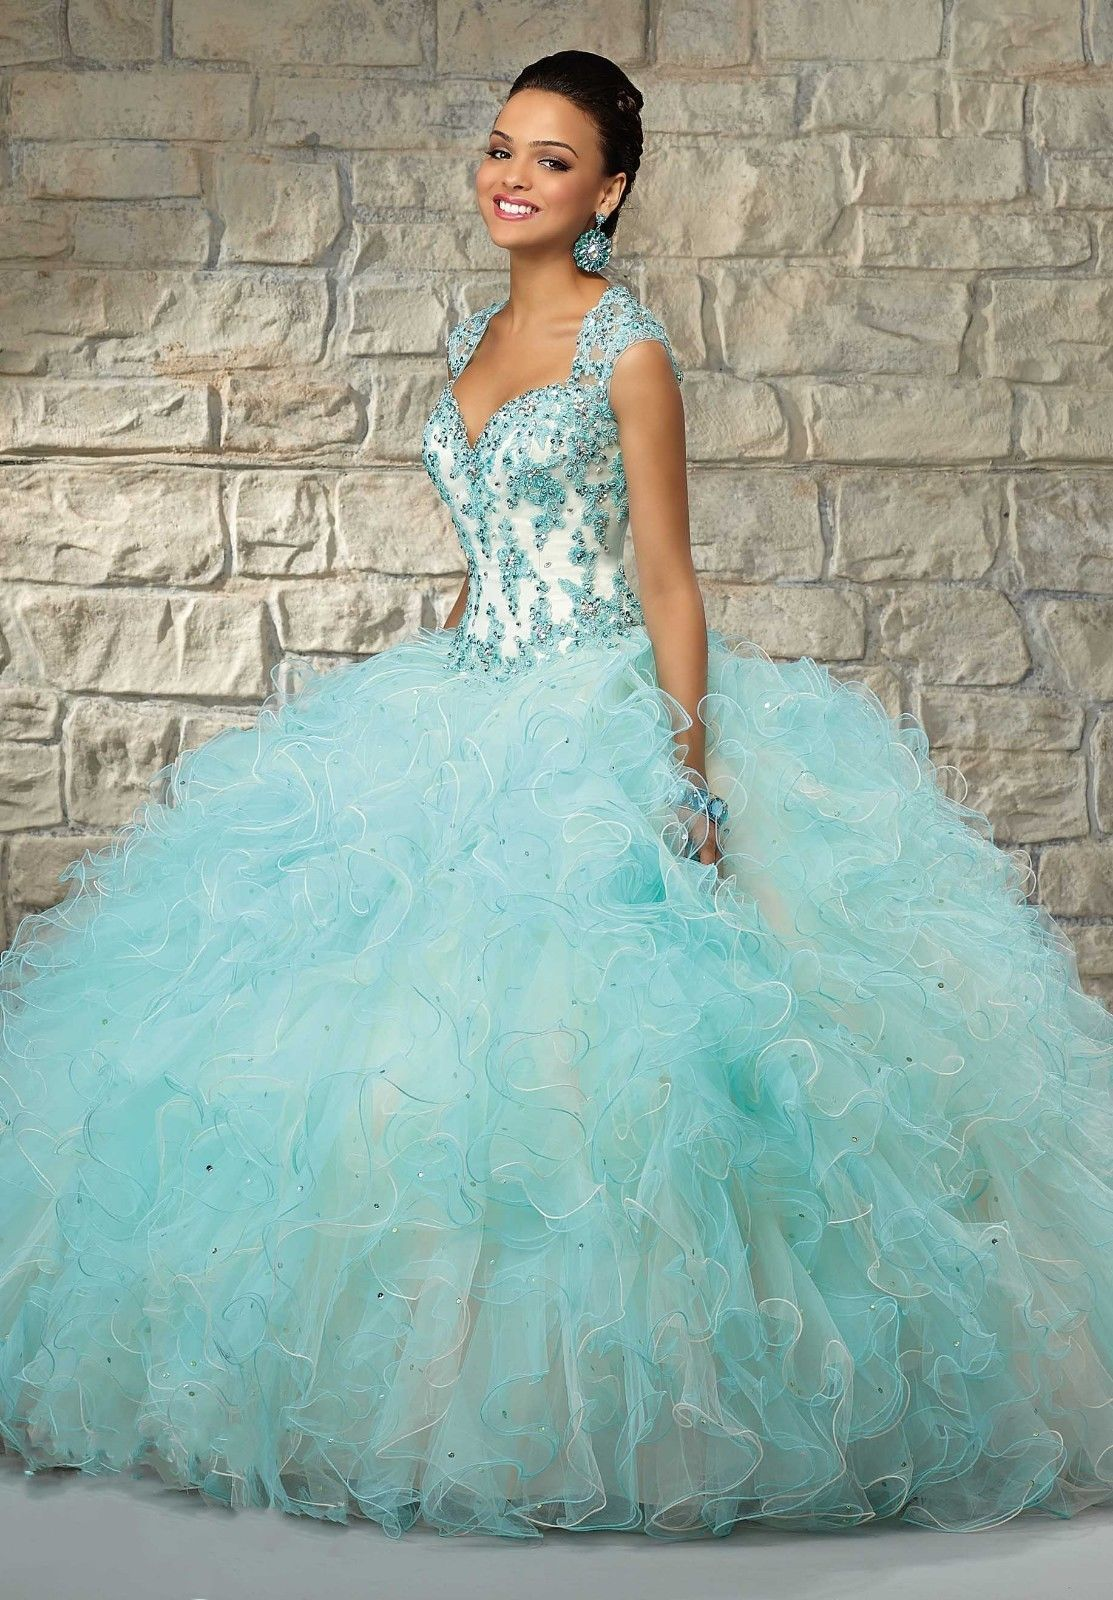 Teal and white wedding dresses  Cool Great Hot Sale Pretty Formal Prom Quinceanera Party Ball Gown